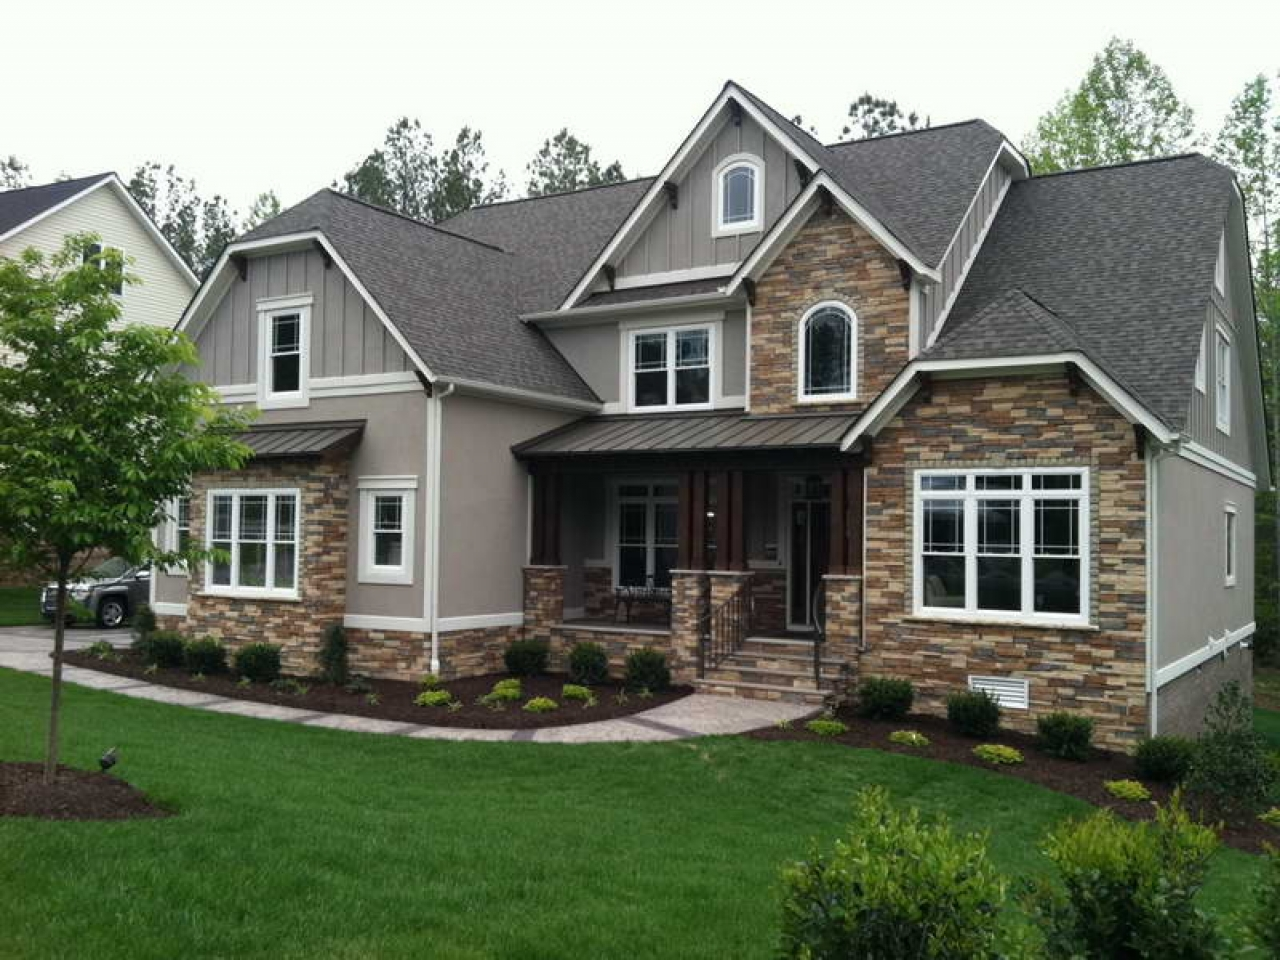 Craftsman home exterior siding ideas craftsman house for House siding colors ideas